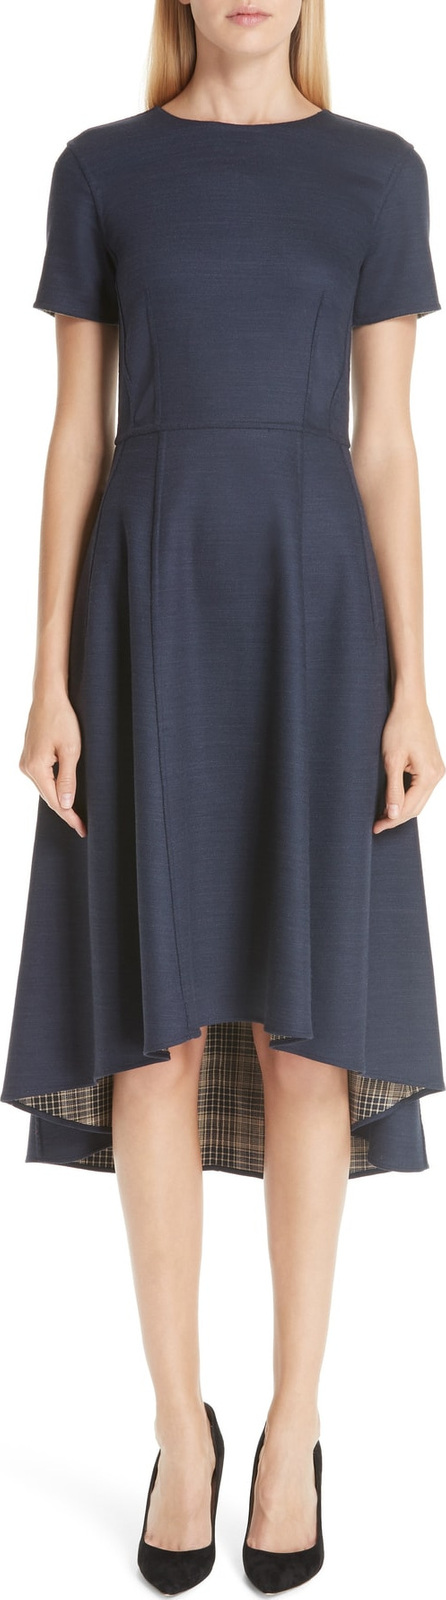 Adam Lippes Reversible Double Face High/Low Dress